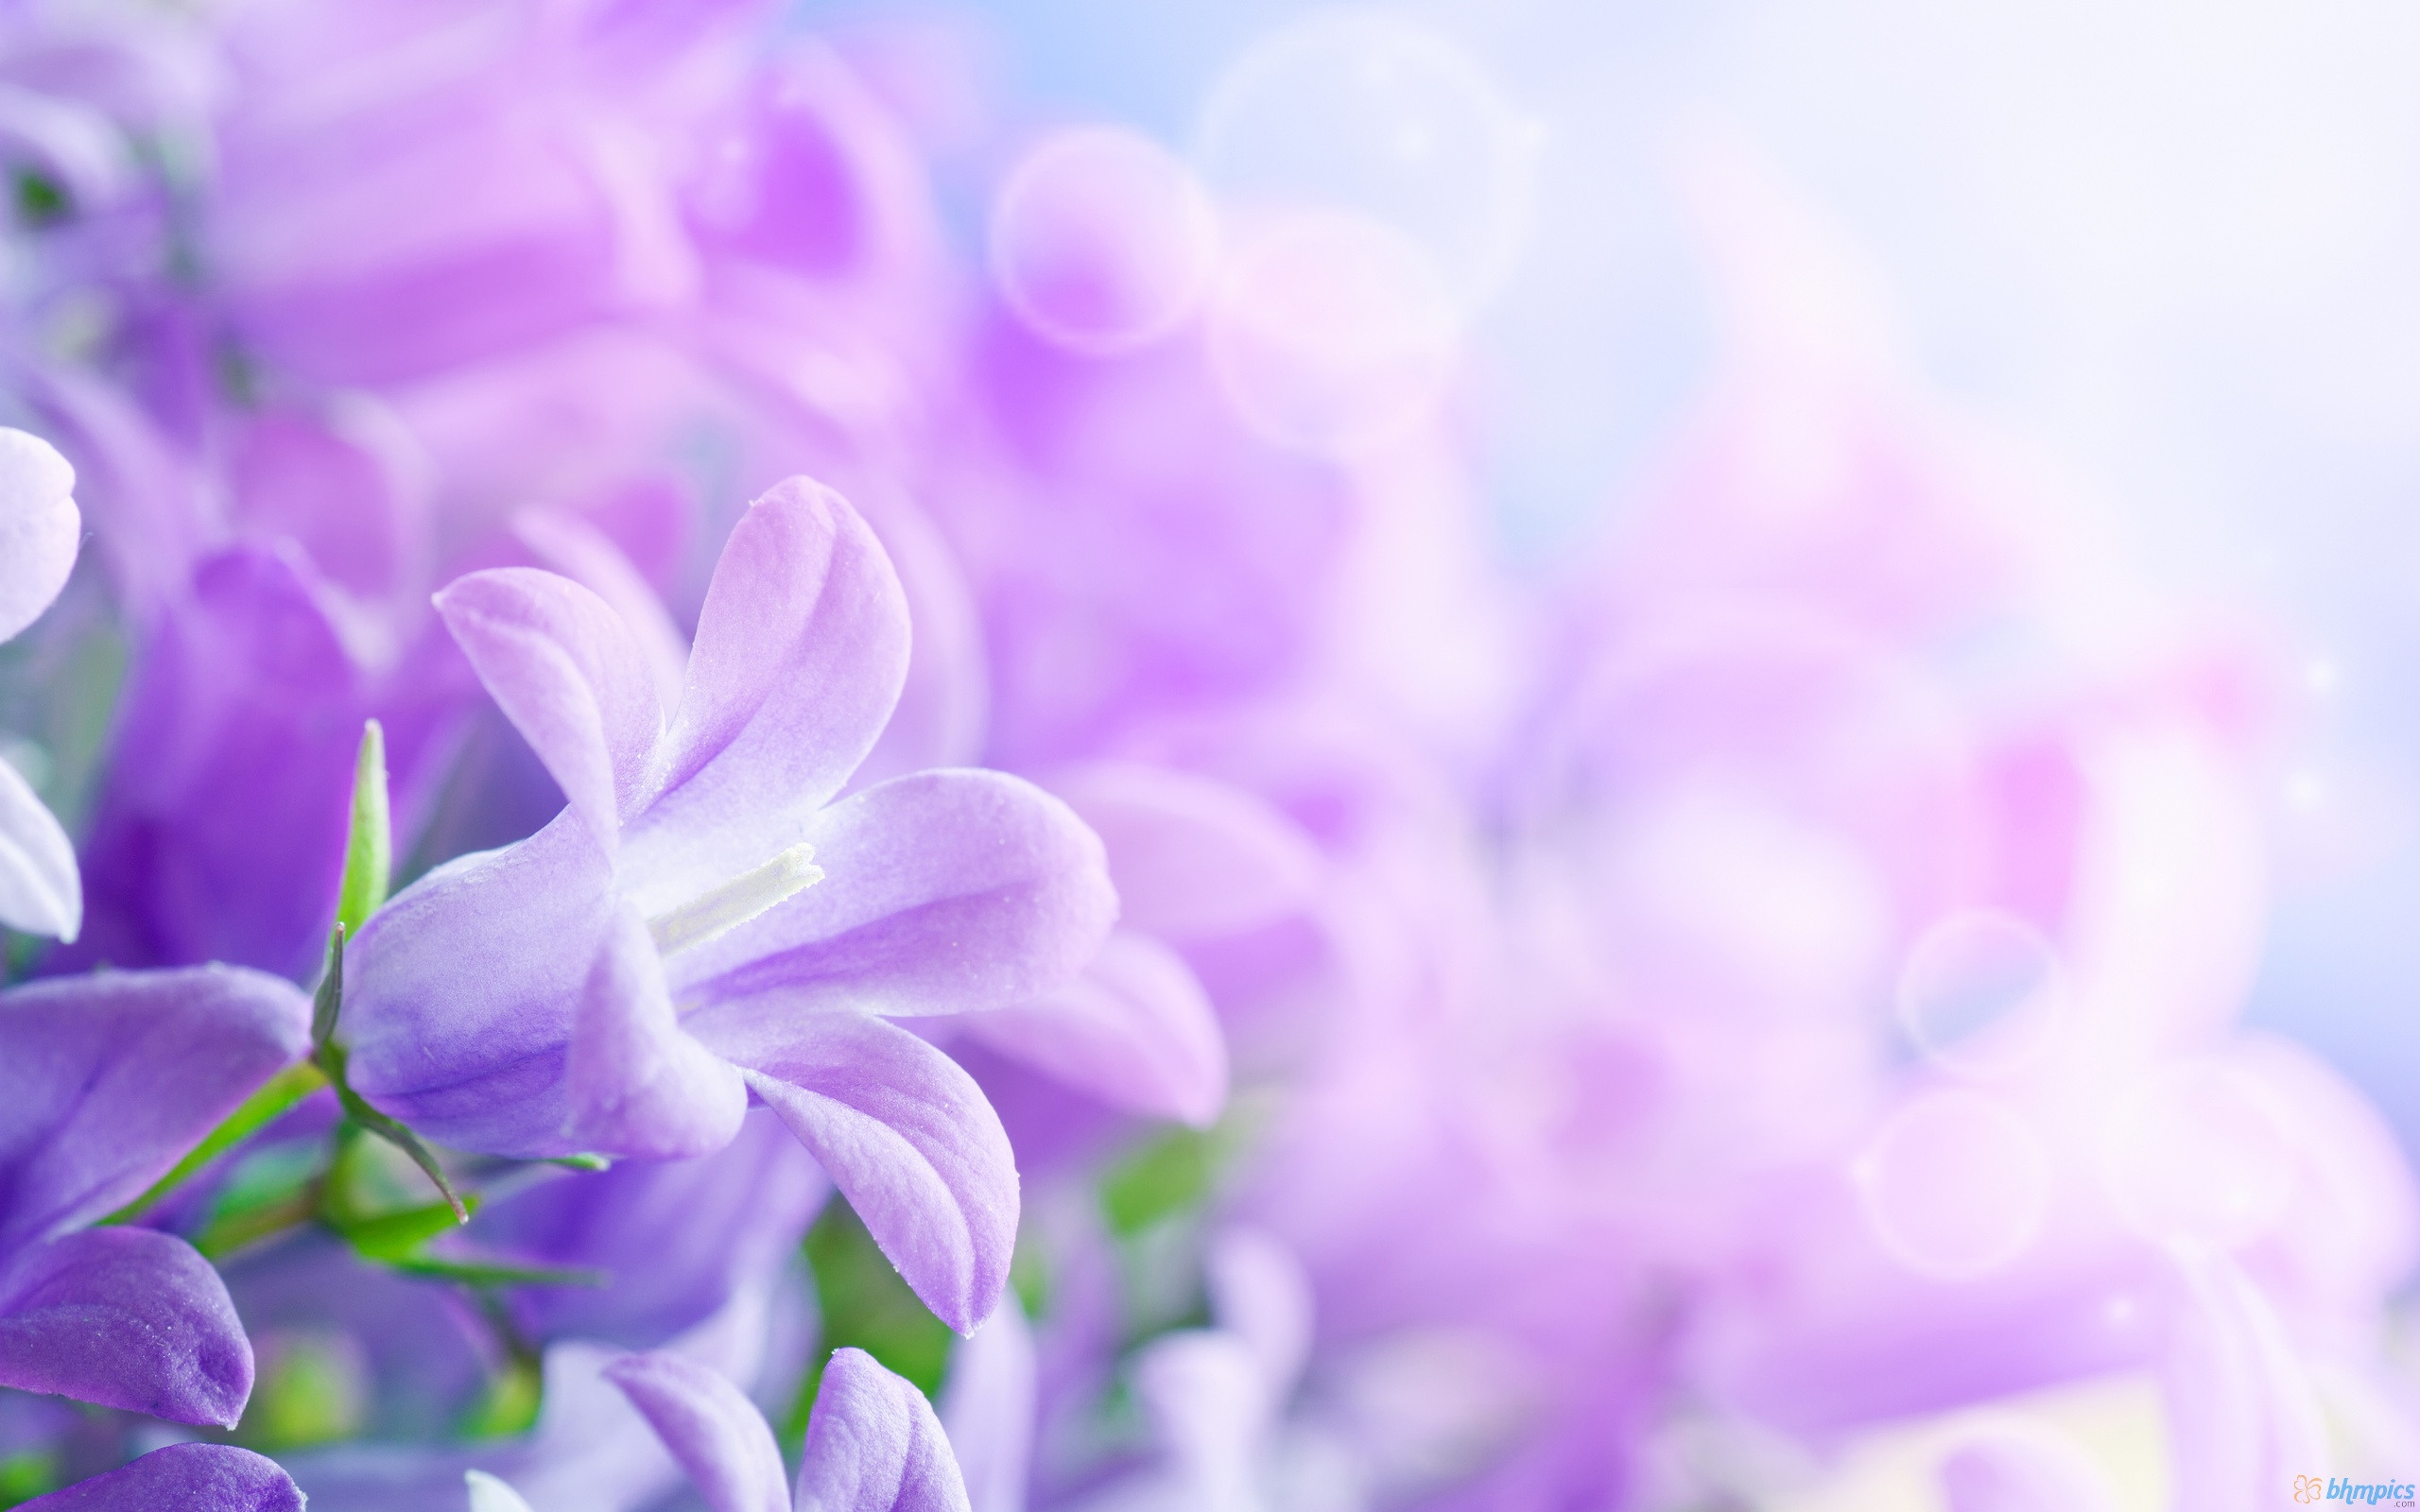 flower 2560×1600 jpg home flowers purple spring flower 2560×1600 Wallpaper